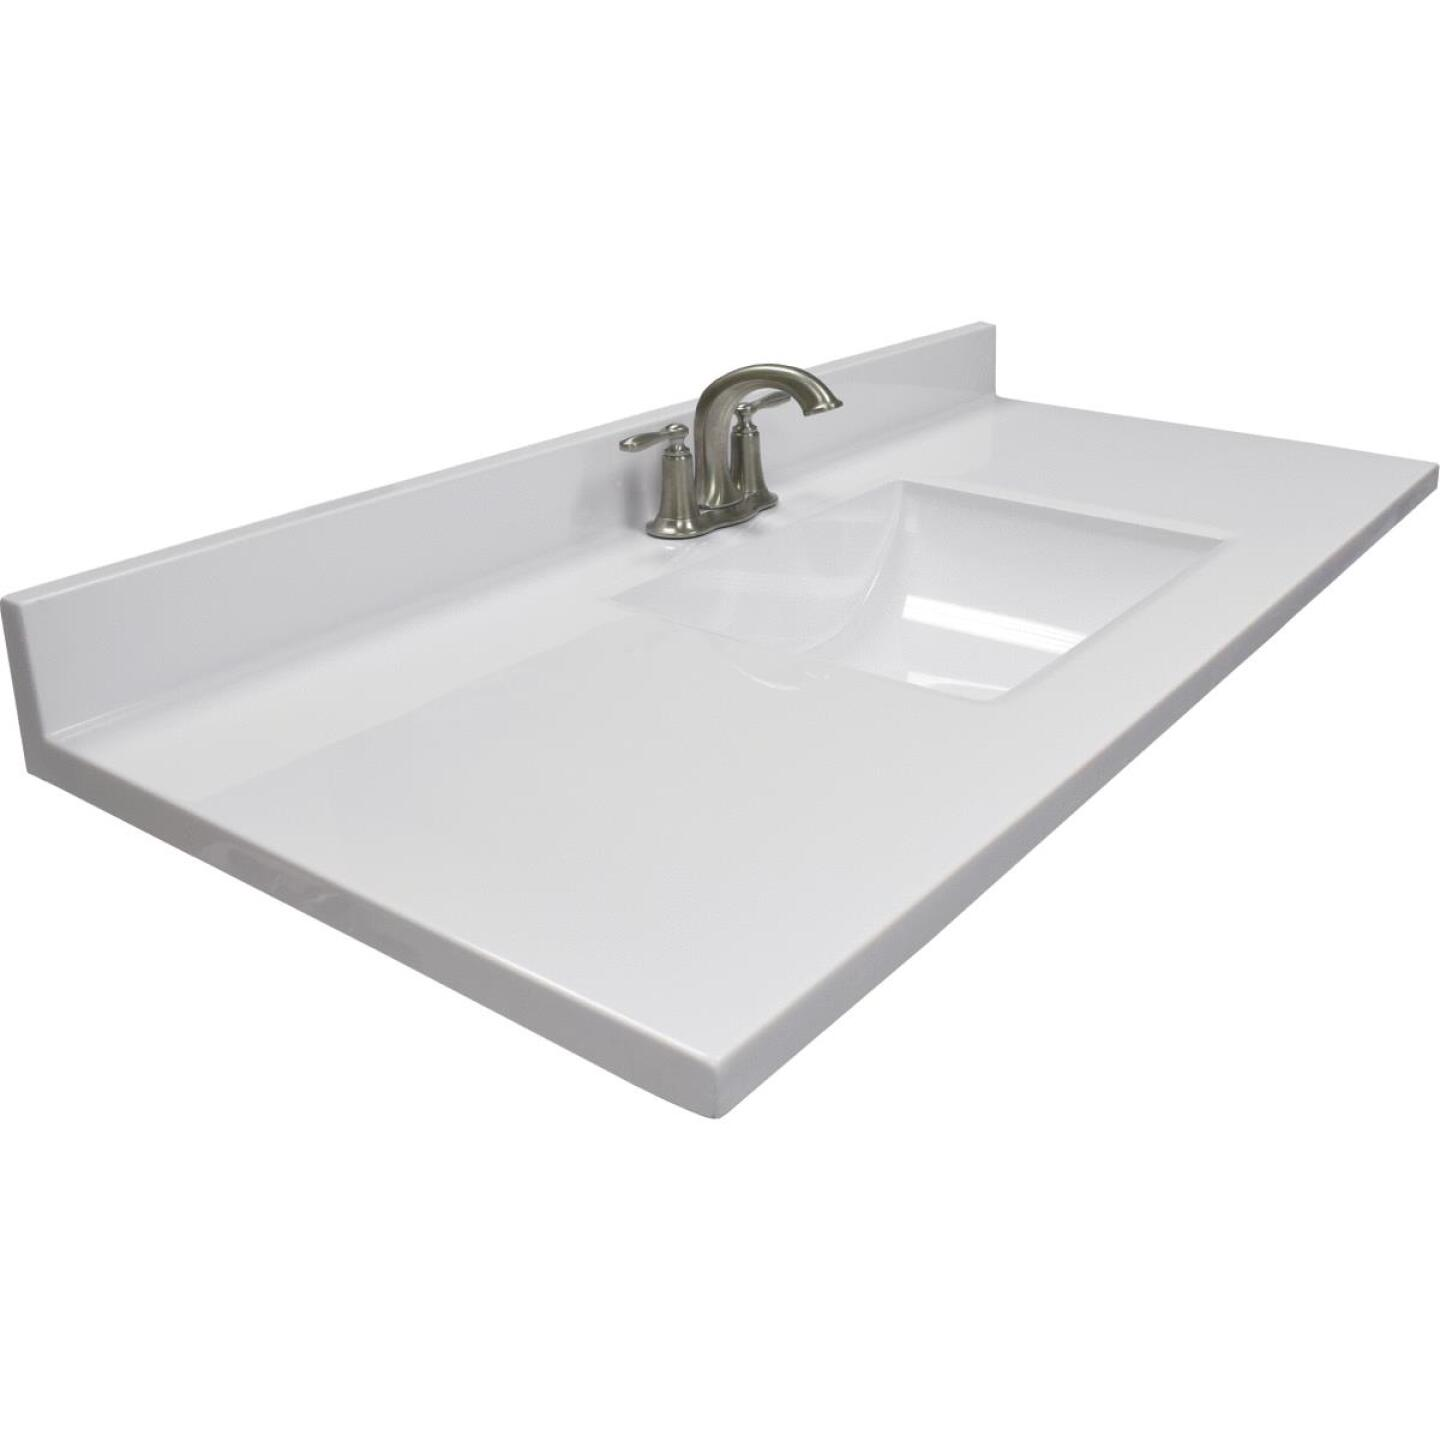 Modular Vanity Tops 49 In. W x 22 In. D Solid White Cultured Marble Vanity Top with Rectangular Wave Bowl Image 1